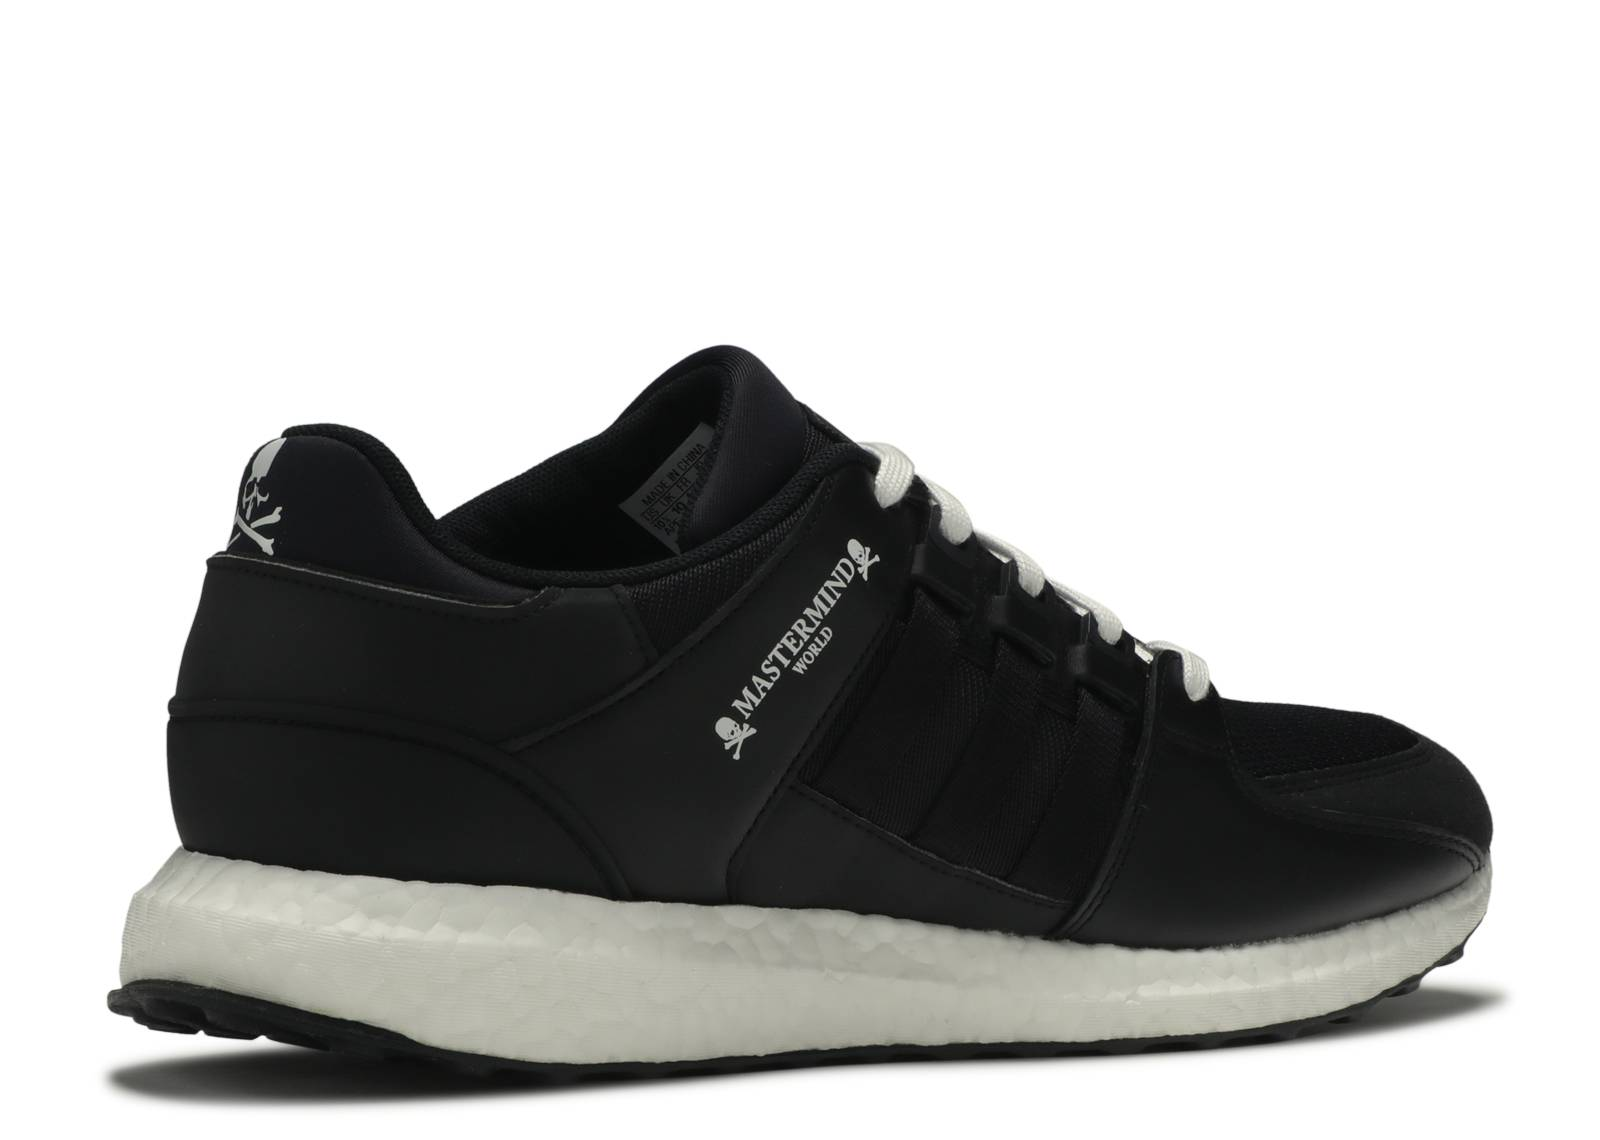 low priced 99ded e358e Eqt Support Ultra Mmw